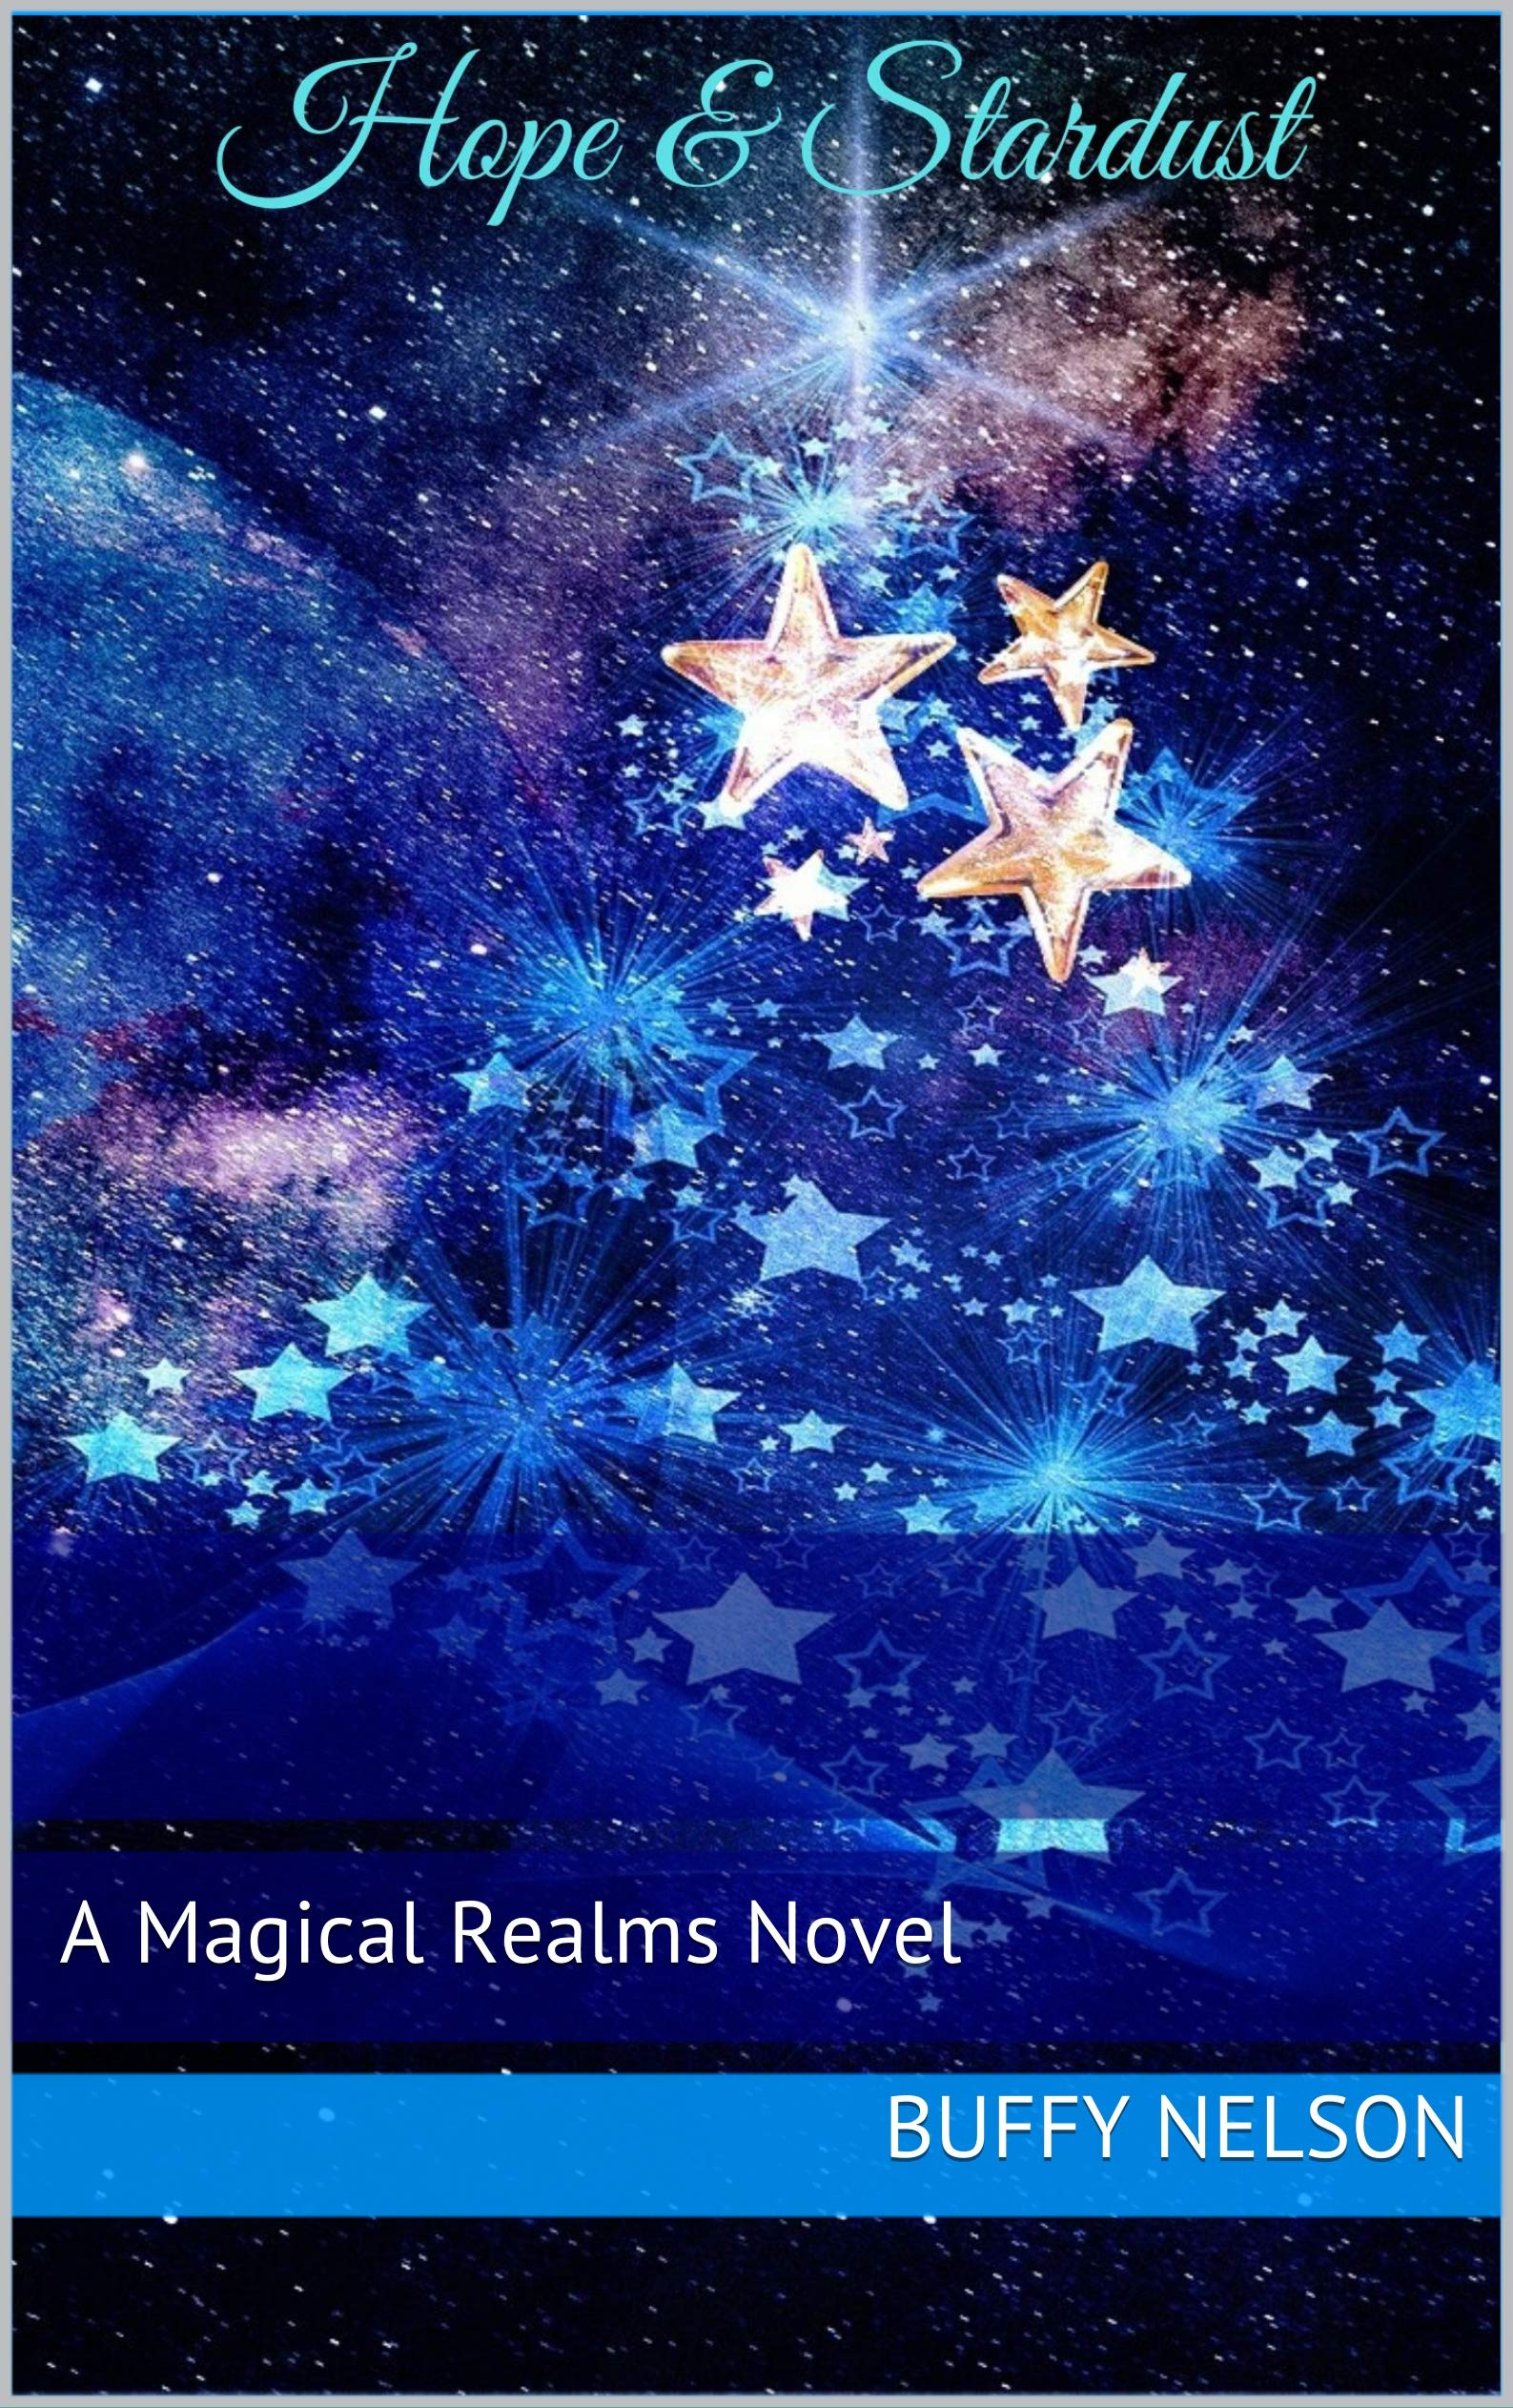 Hope and Stardust: A Magical Realms Novel